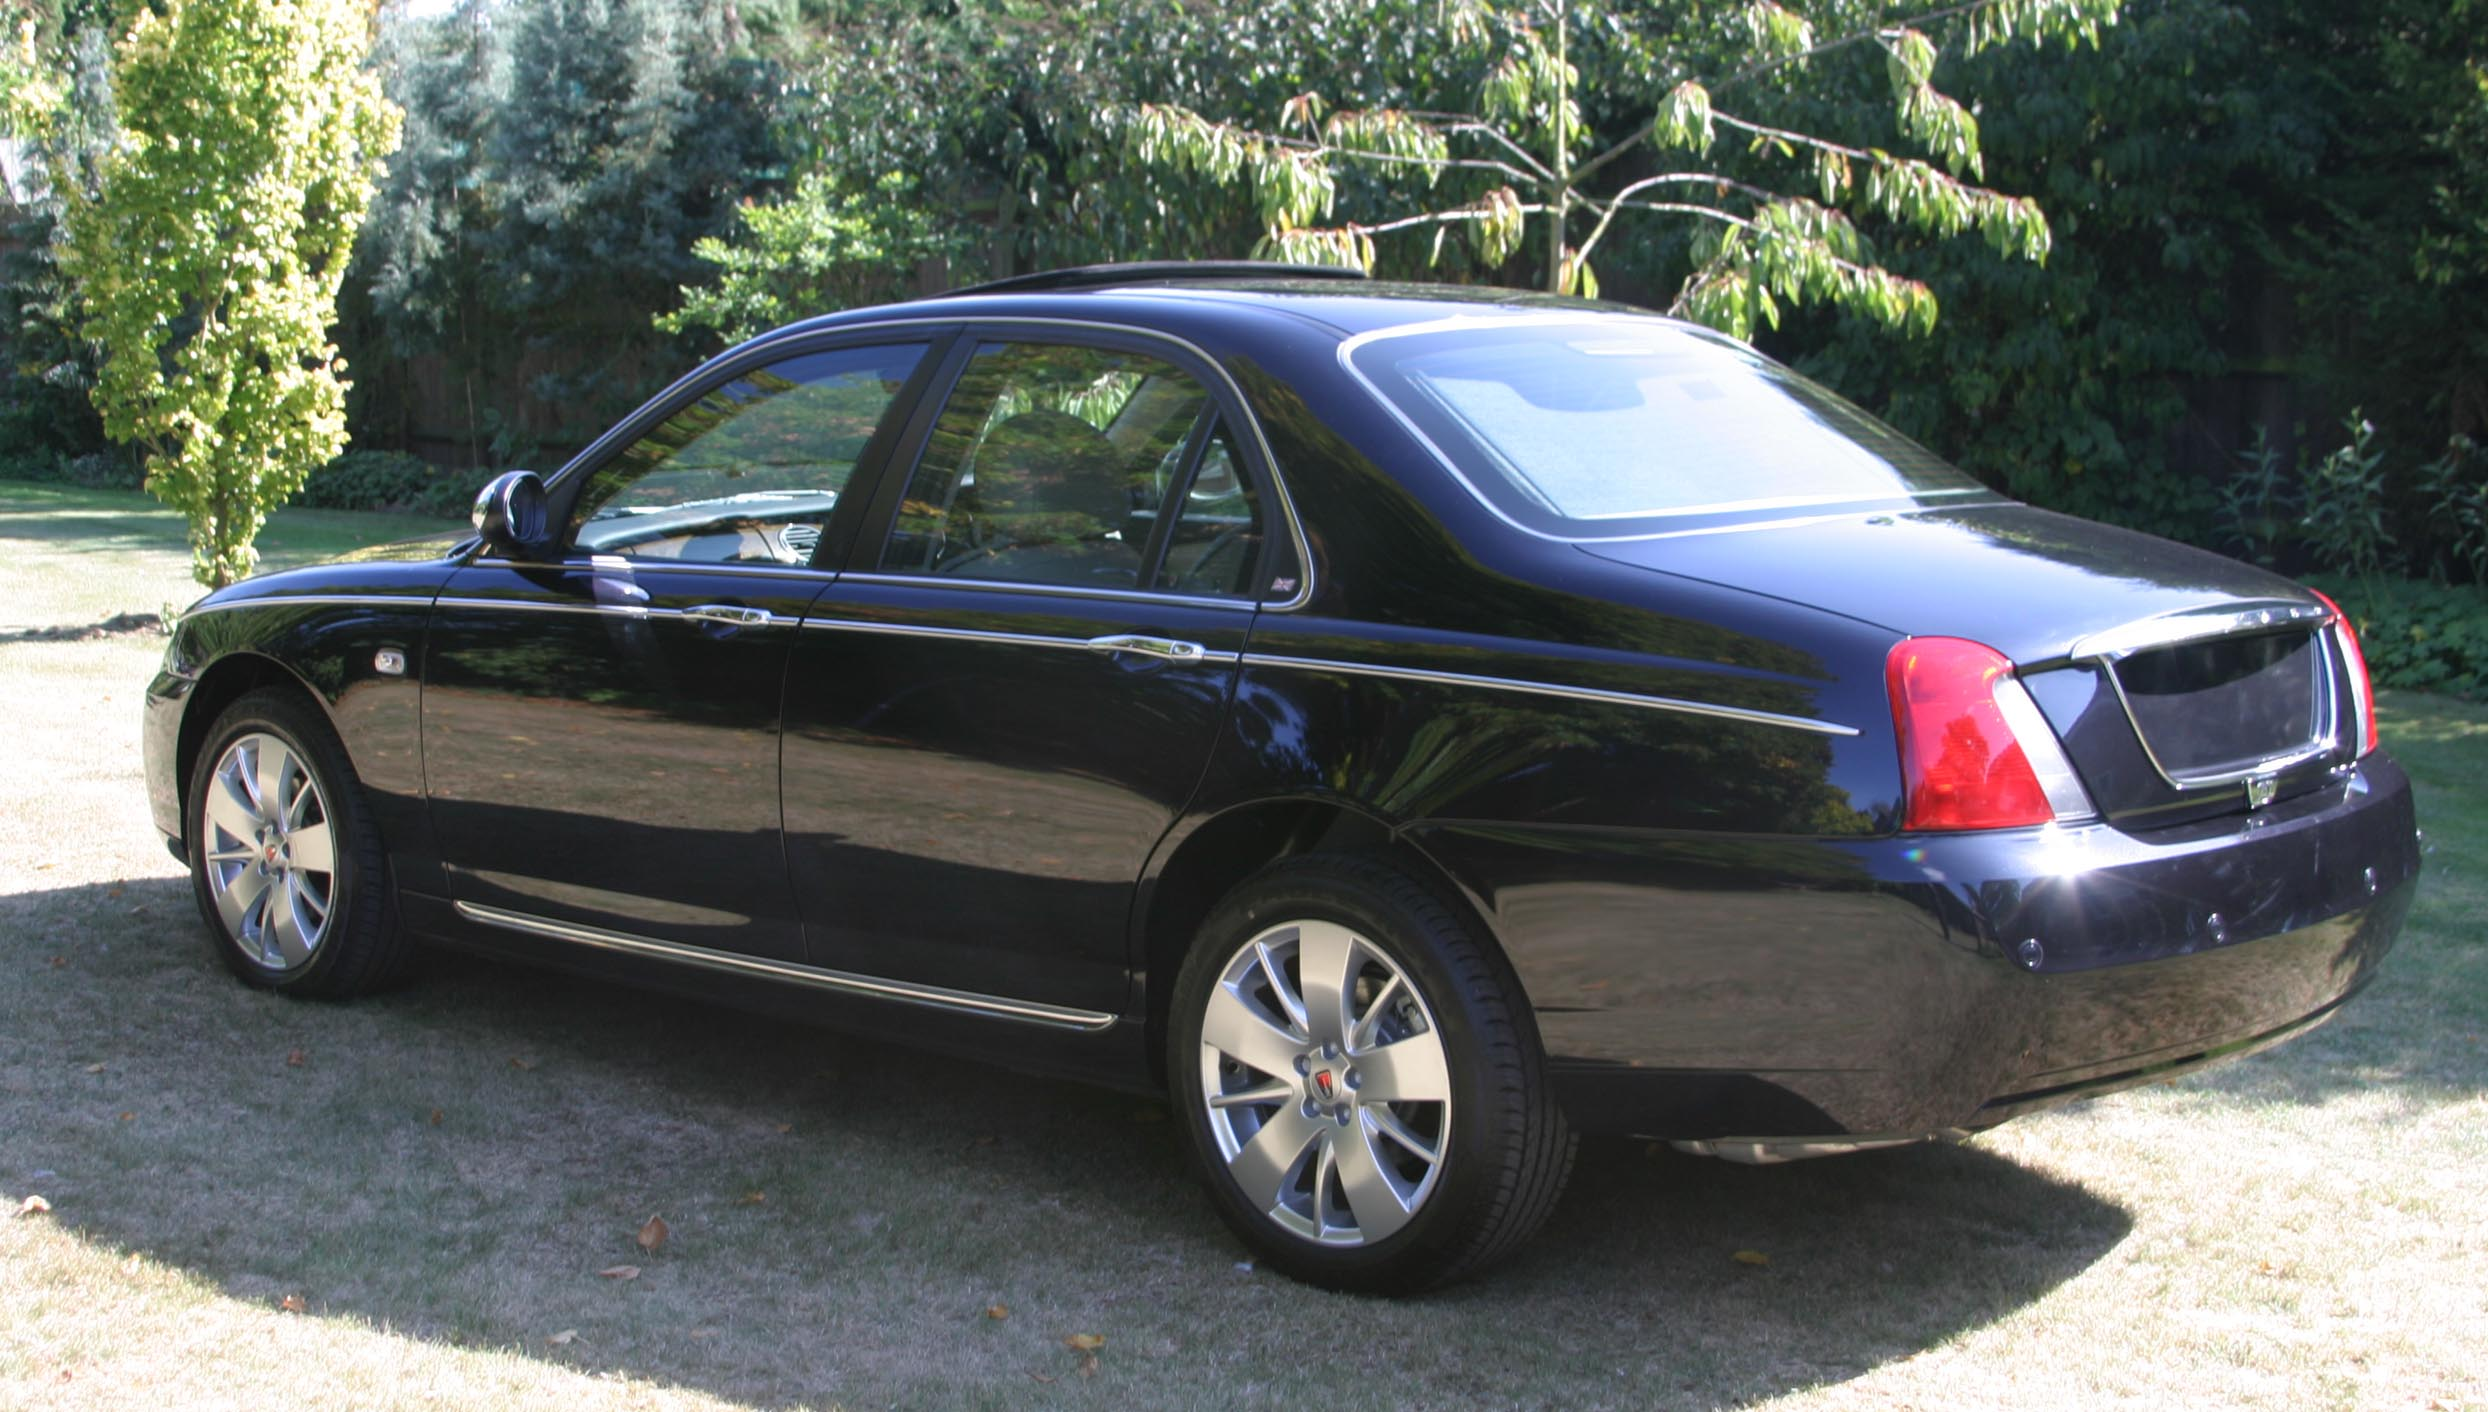 rover 75 1.8i-pic. 2